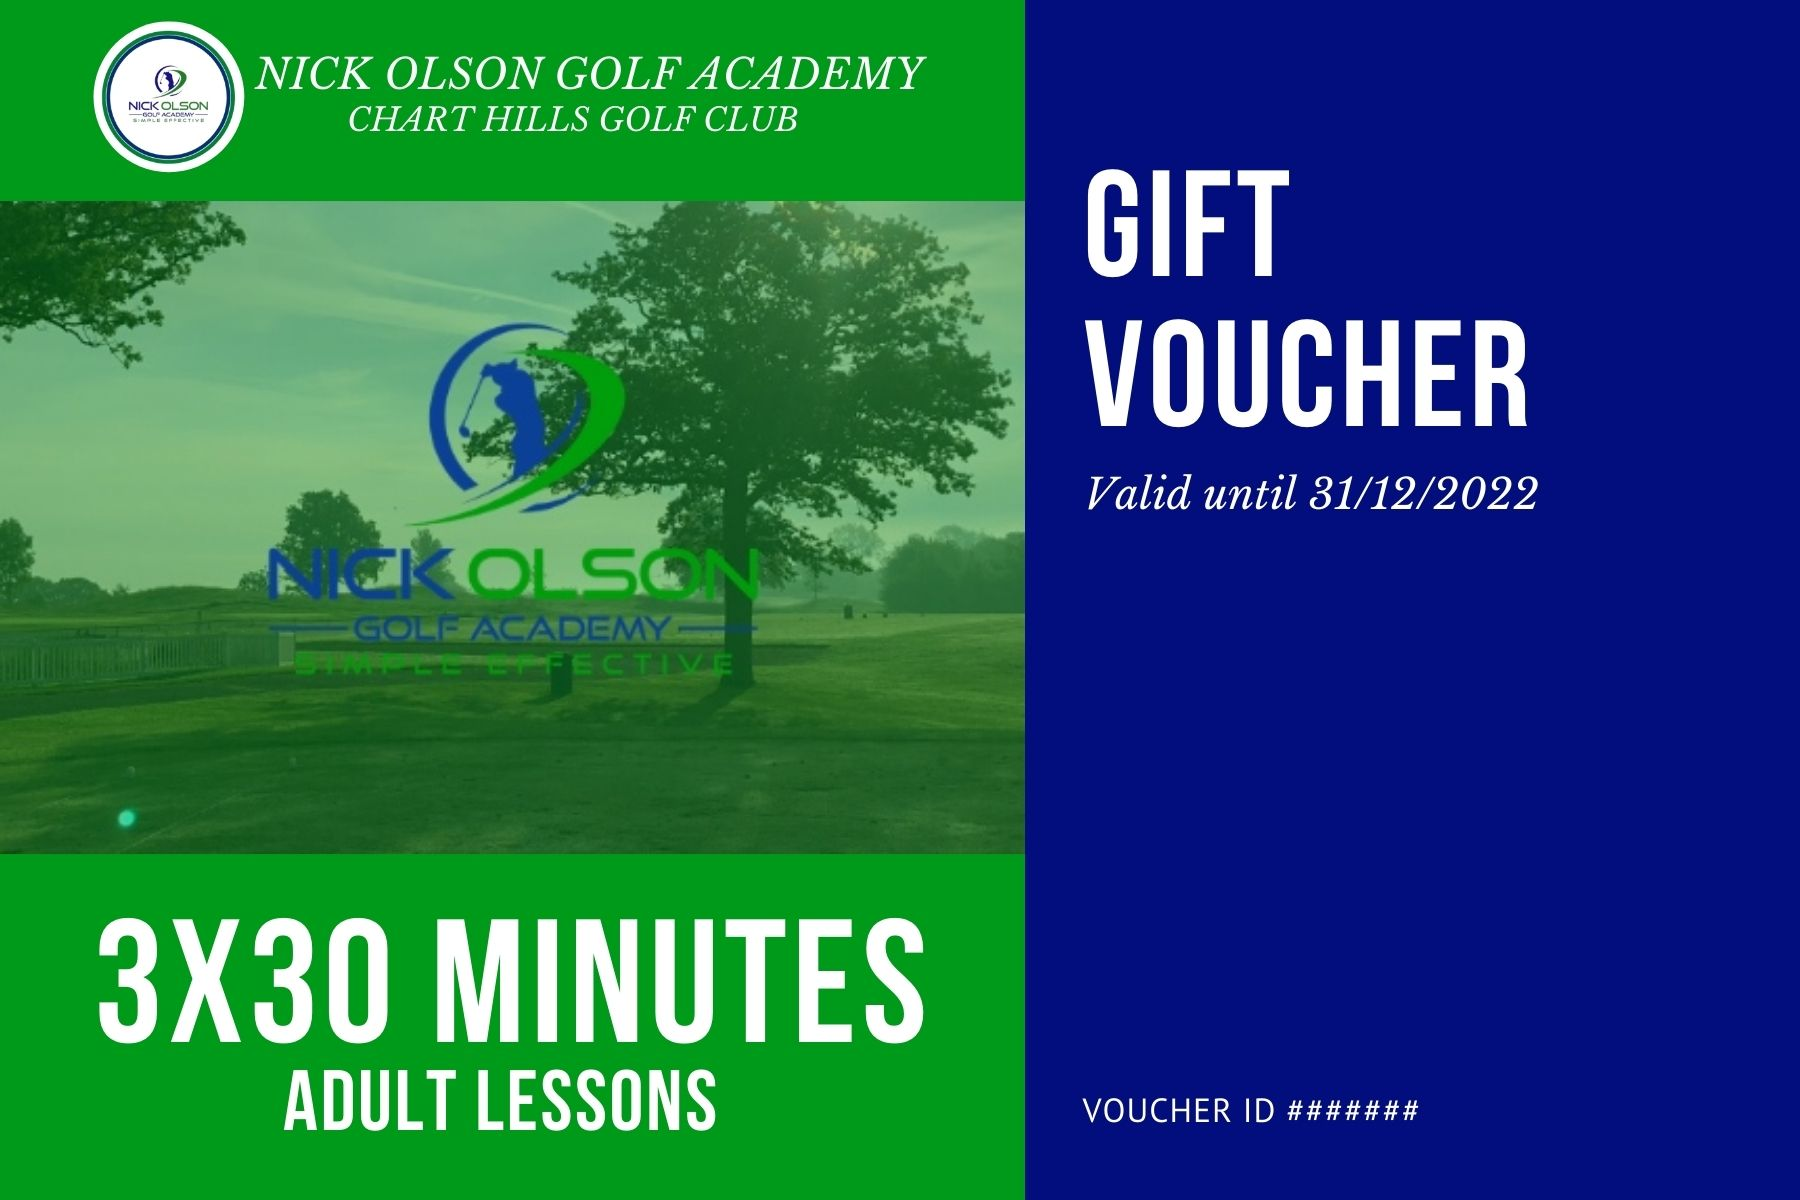 ADULT 3x30 MINUTE GOLF LESSONS